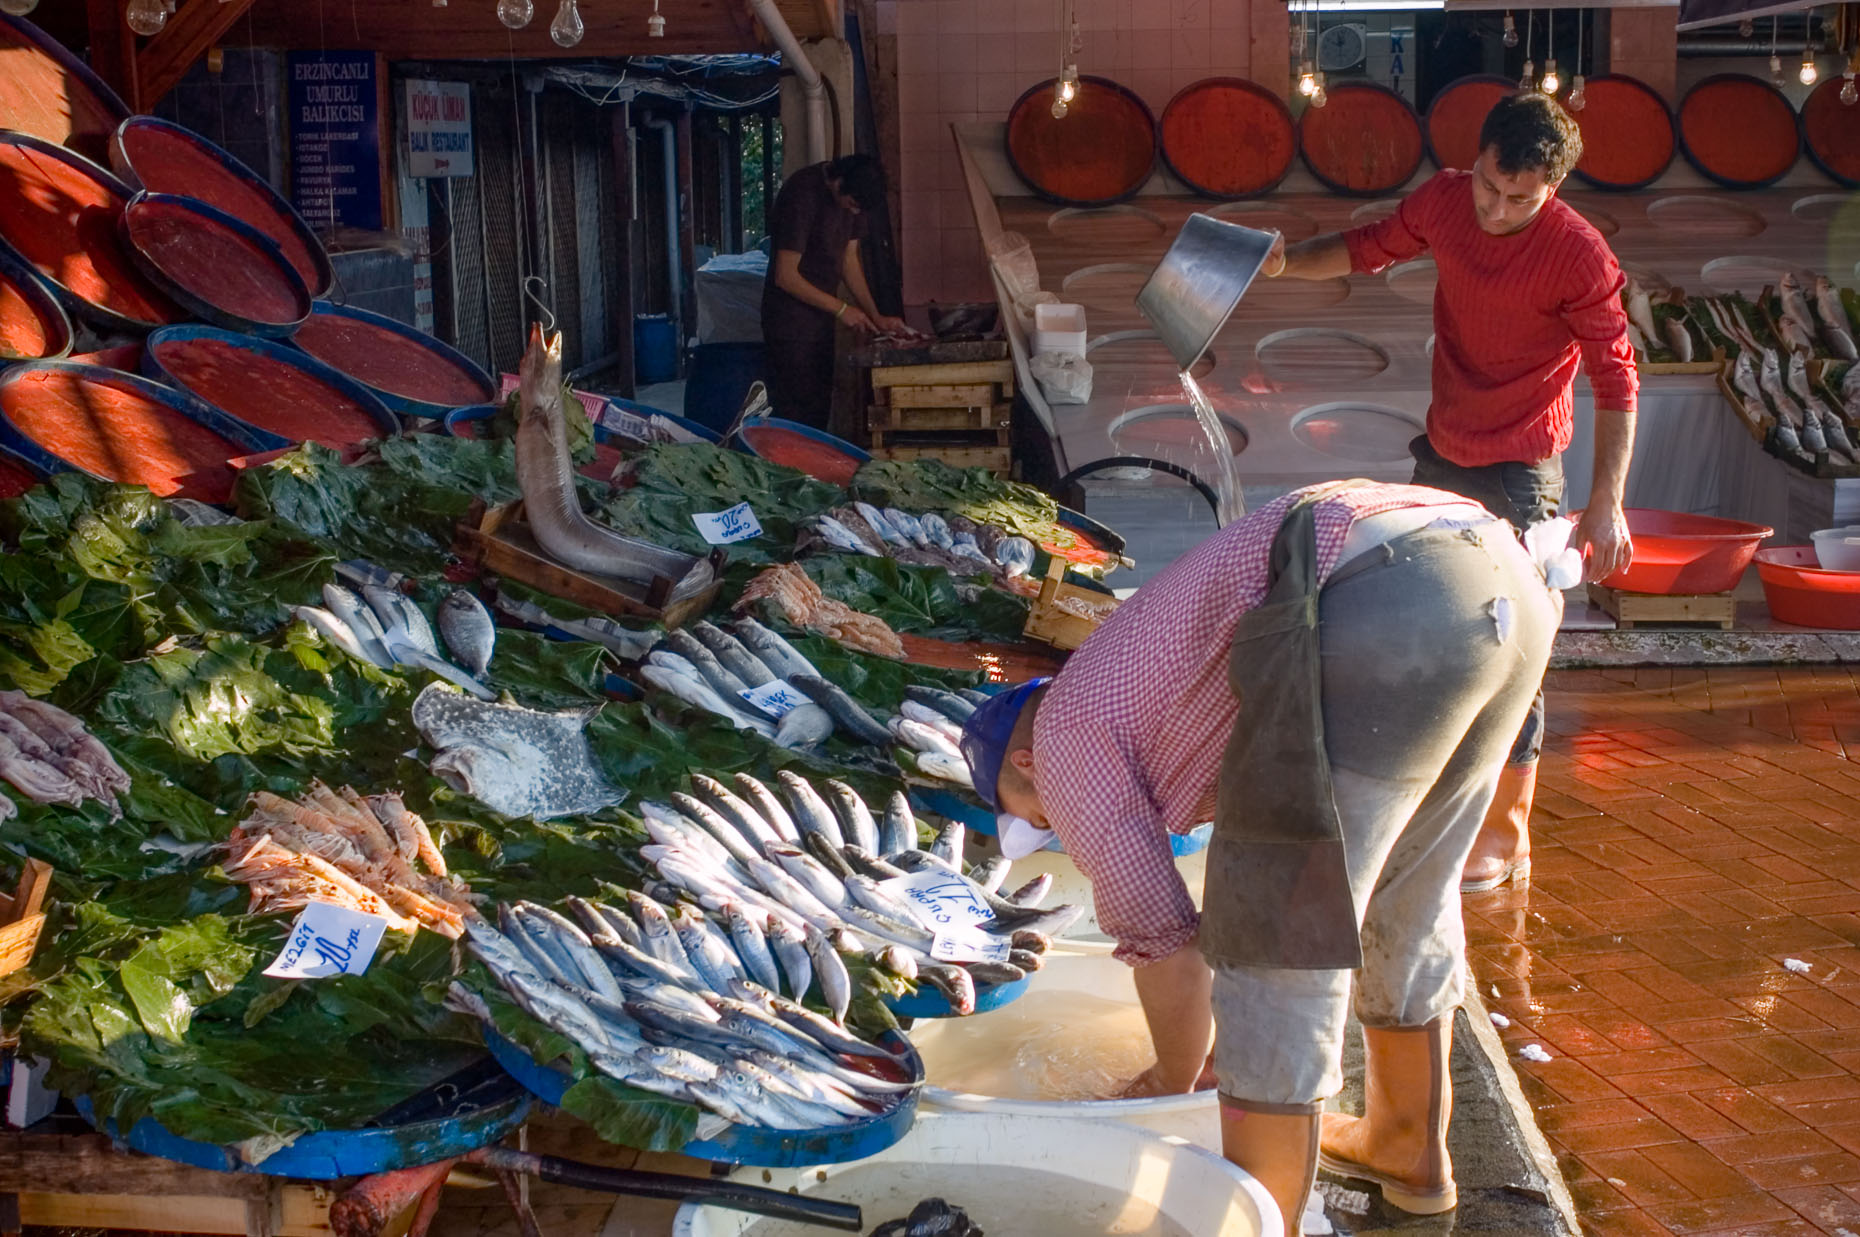 Portrait of fish mongers in open market in Istanbul Turkey at sunrise.